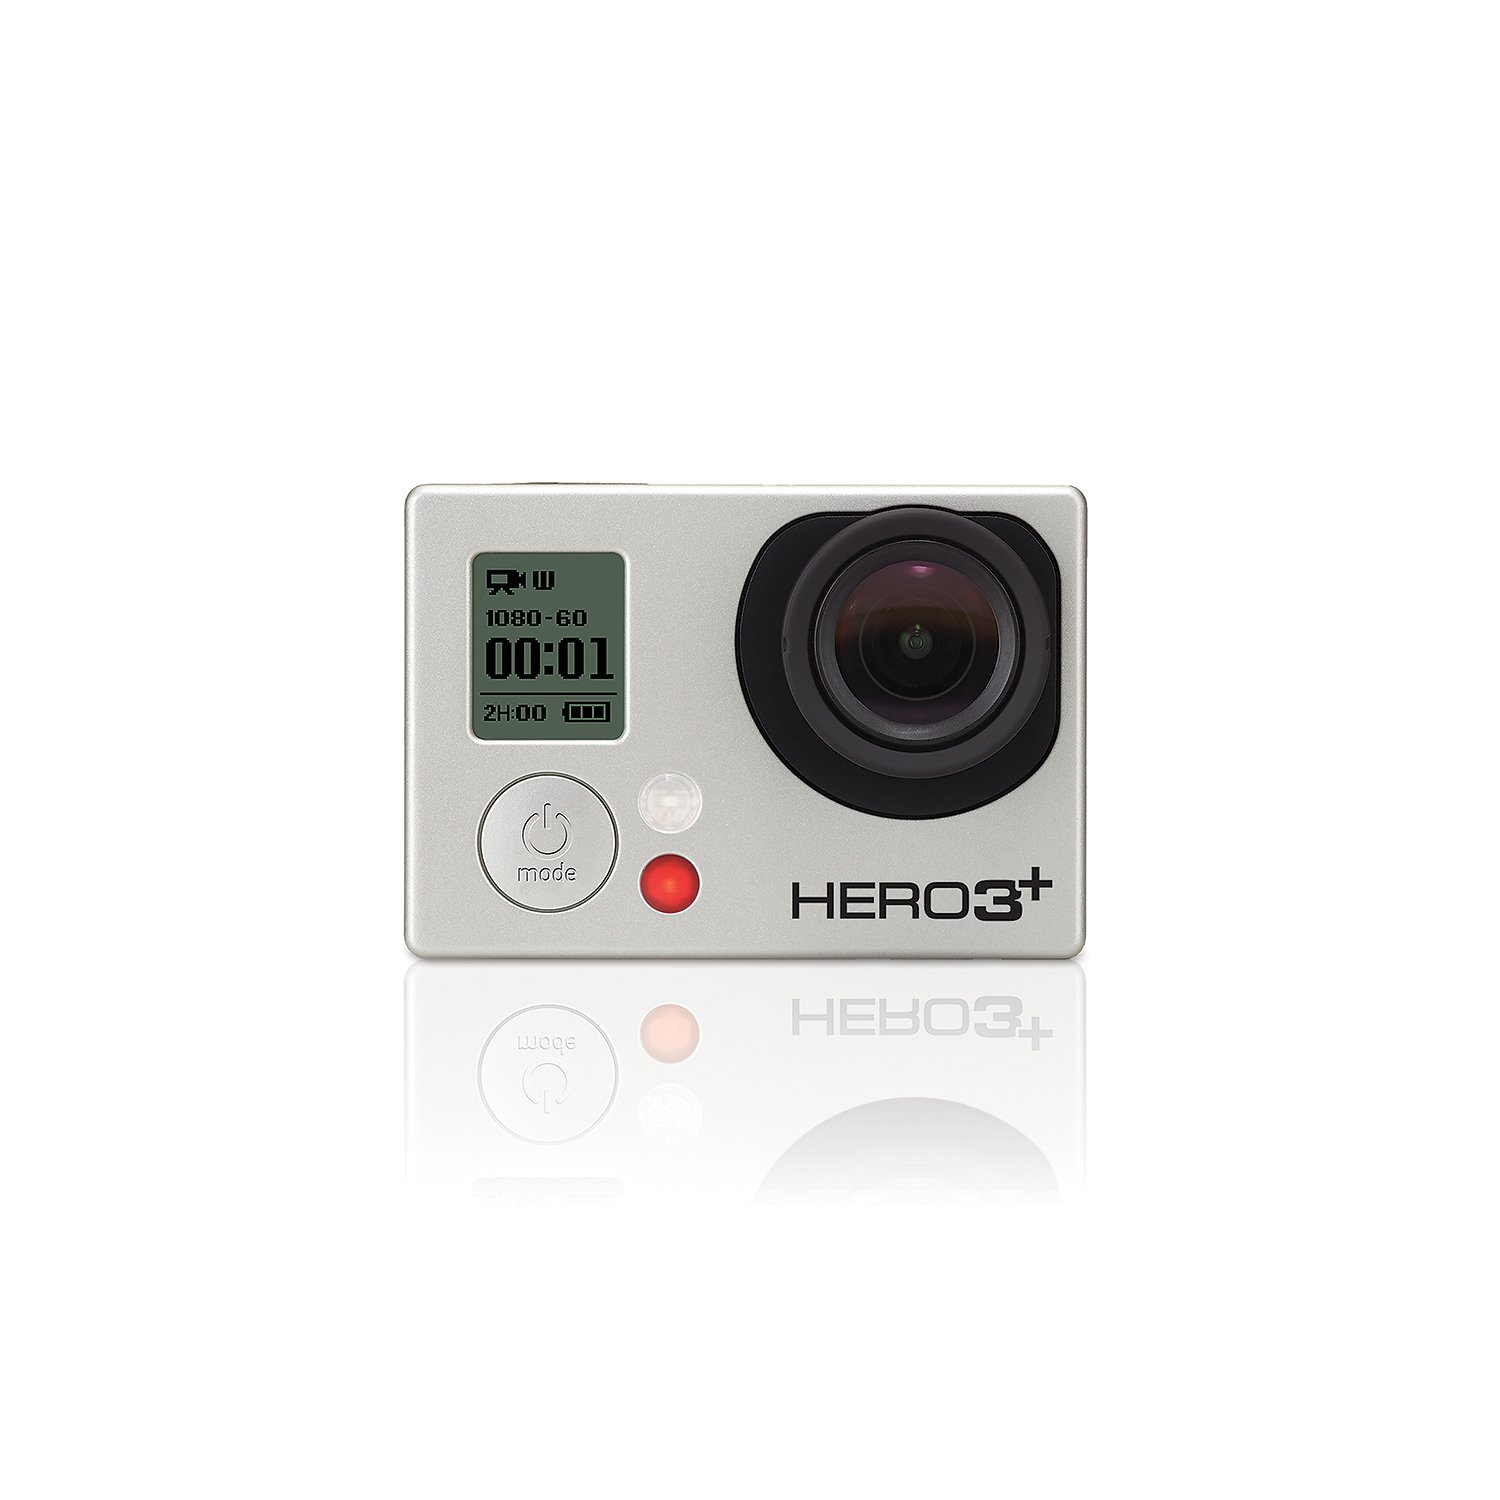 gopro hero 3 camera black edition price in pakistan go. Black Bedroom Furniture Sets. Home Design Ideas